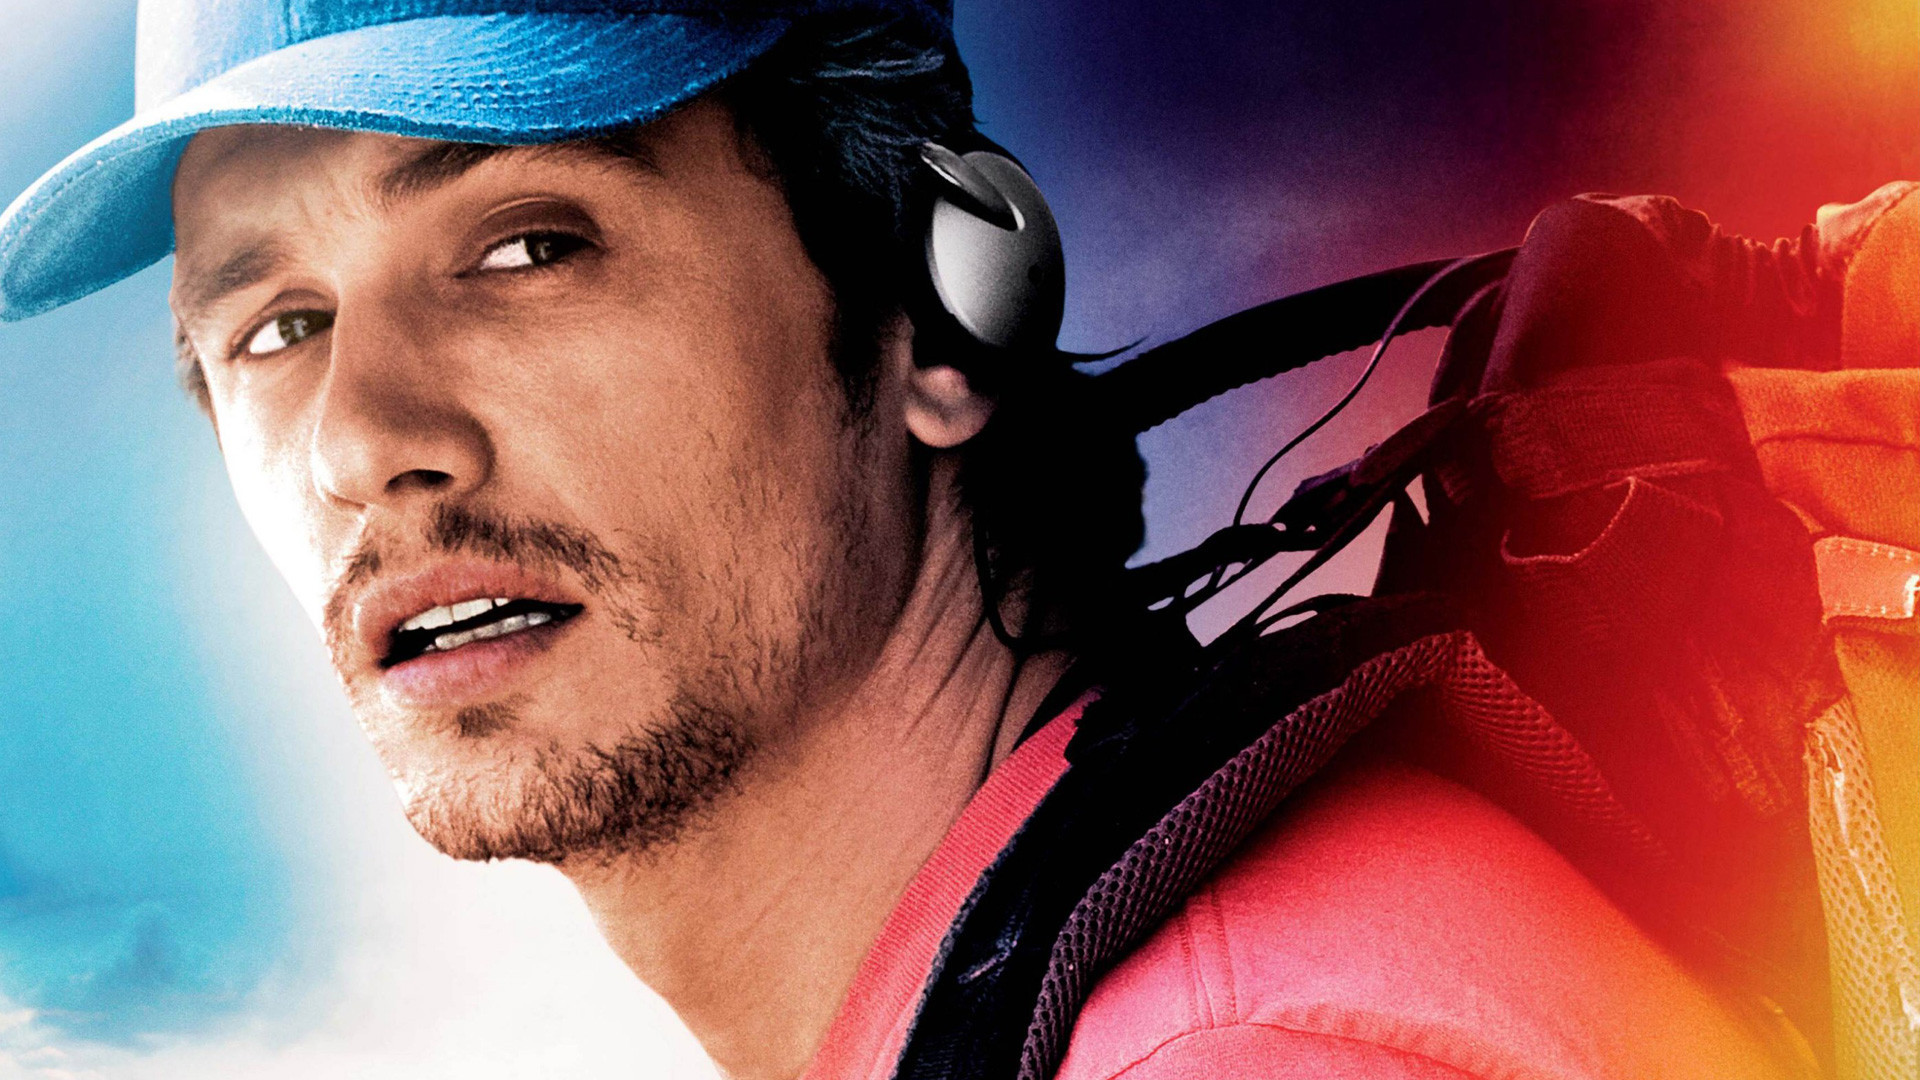 127 hours movie download dual audio